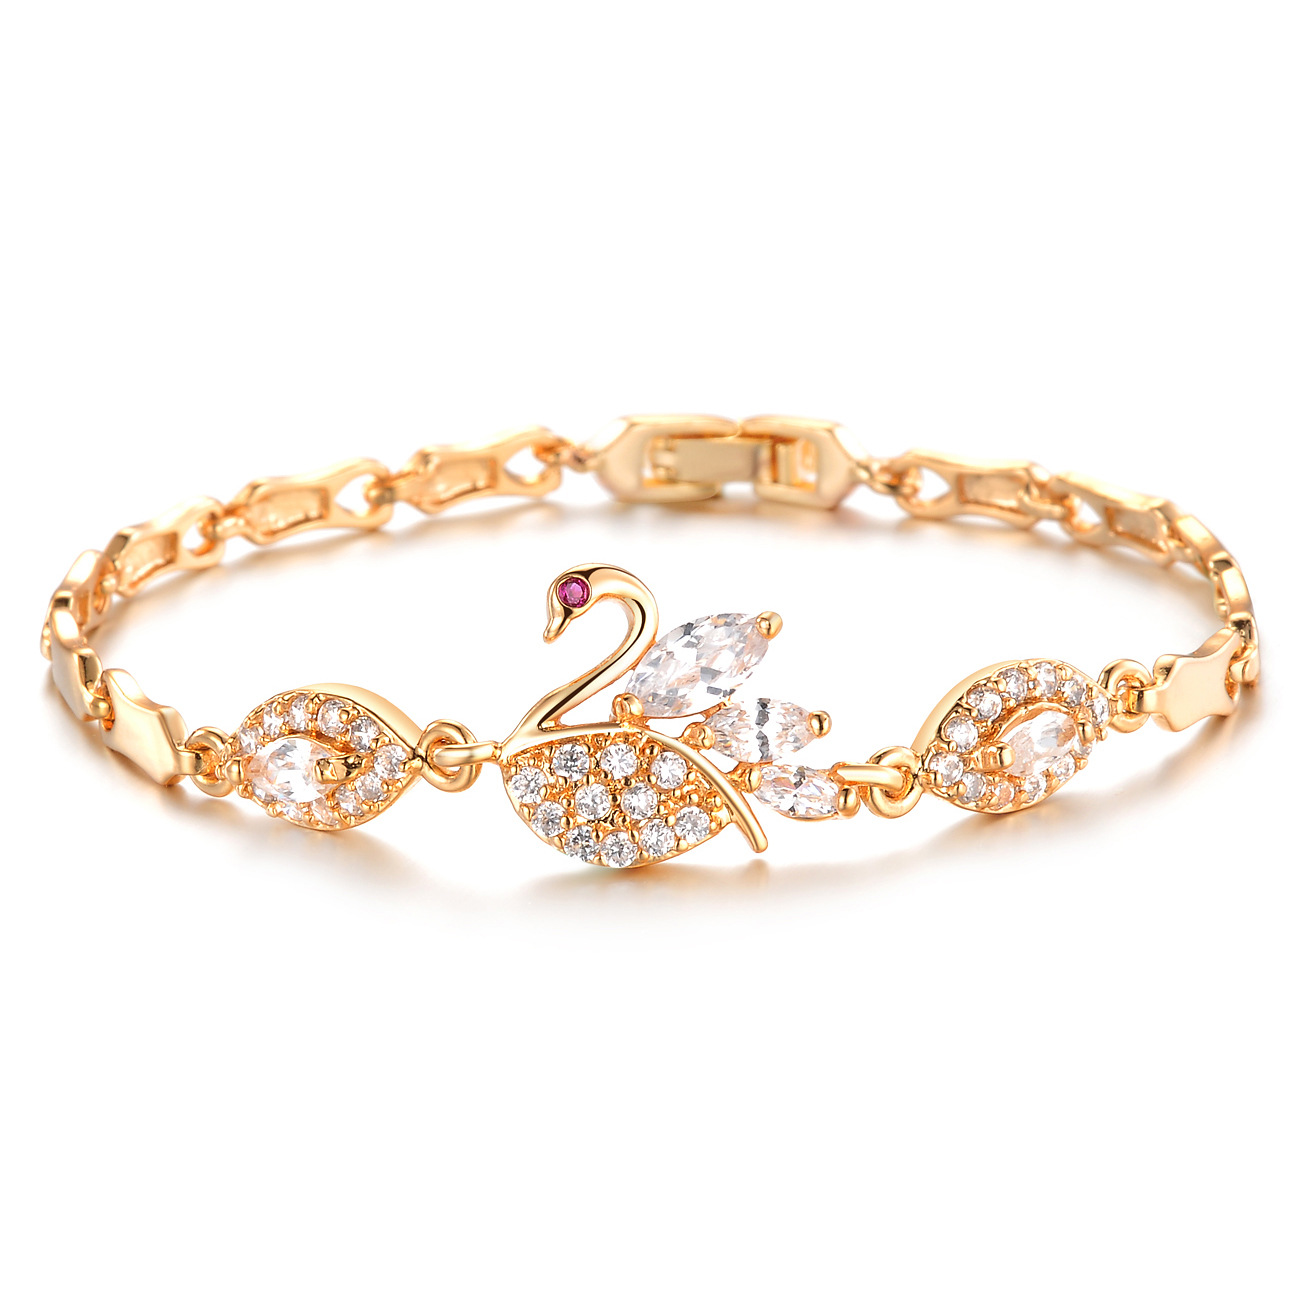 Fashion Swan Women Bracelets Classical Gold color Cubic Zircon Link Chain Jewelry Bracelet